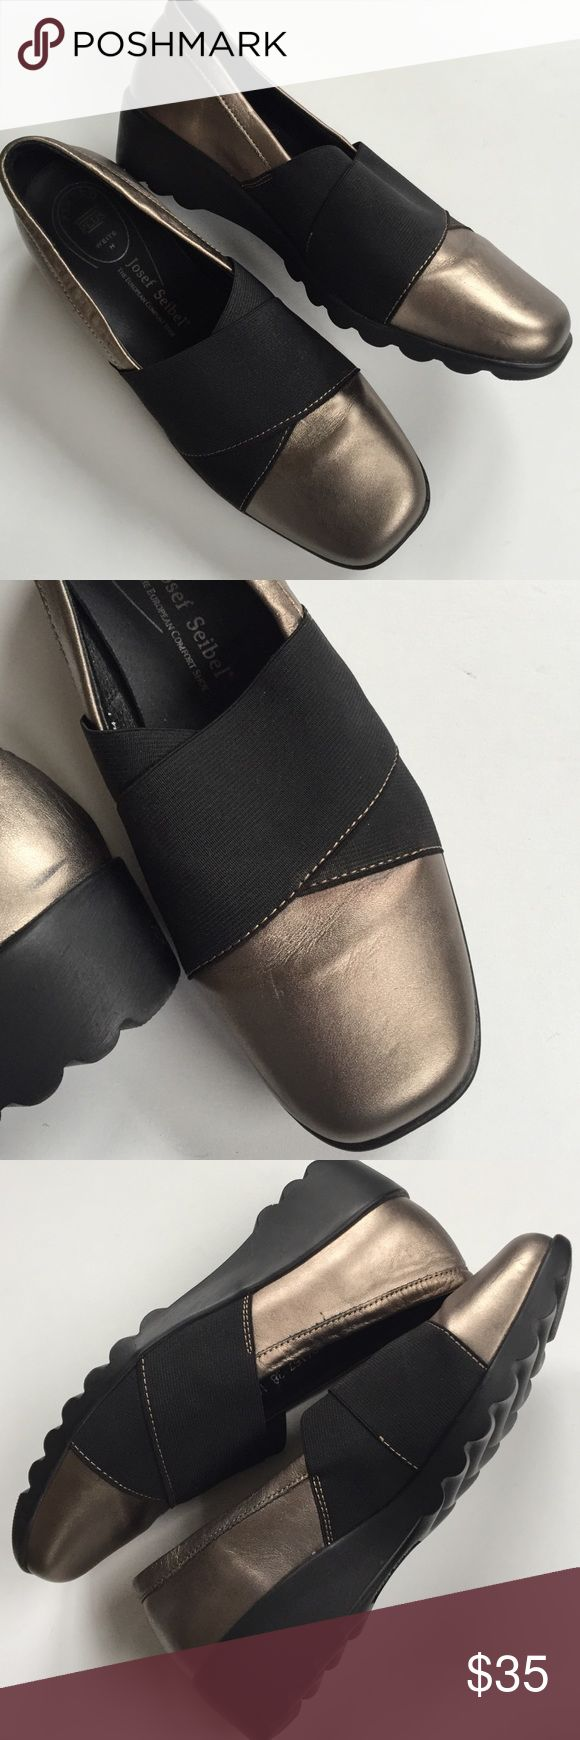 EUC Josef Seibel leather shoes Excellent condition; Beautiful and oh so comfy! Soft gold tone leather with black wide elastic on top of foot. This brand is known for high quality, comfortable footwear. Smoke-free/pet-free home. Josef Seibel Shoes